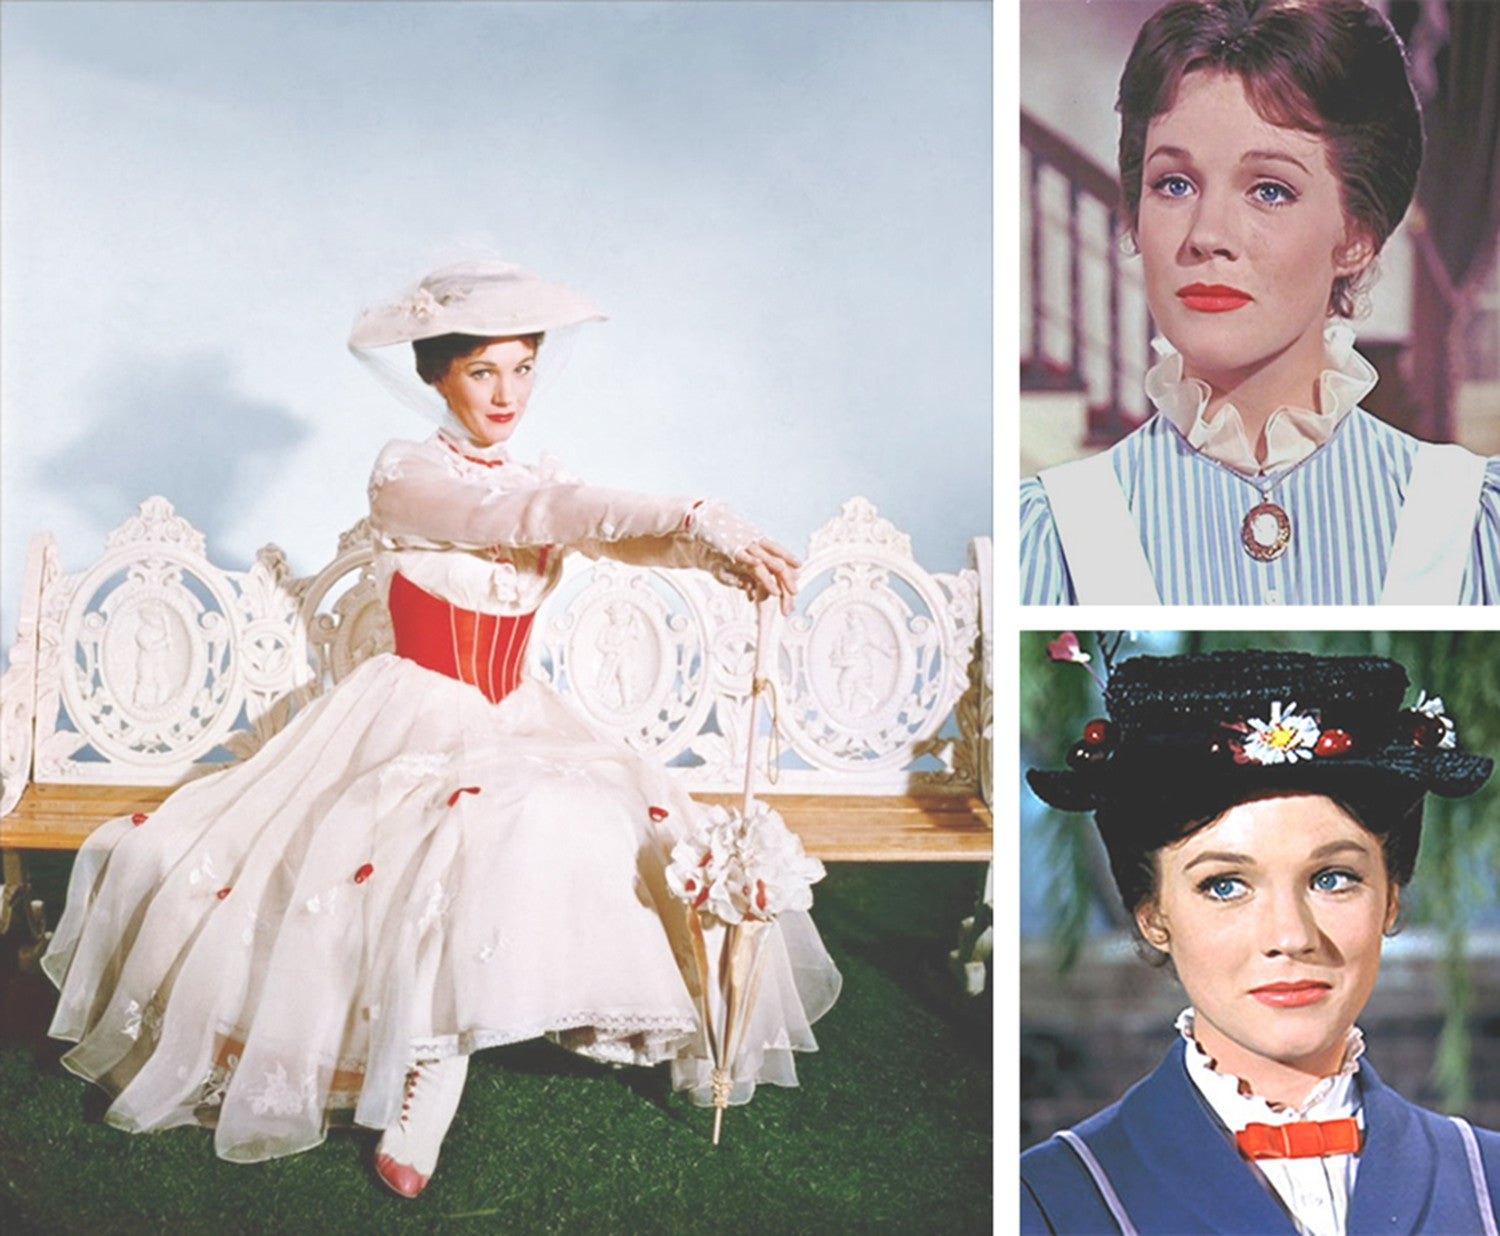 Mary Poppins movie | Going vintage but not too far blog article | On Slowness